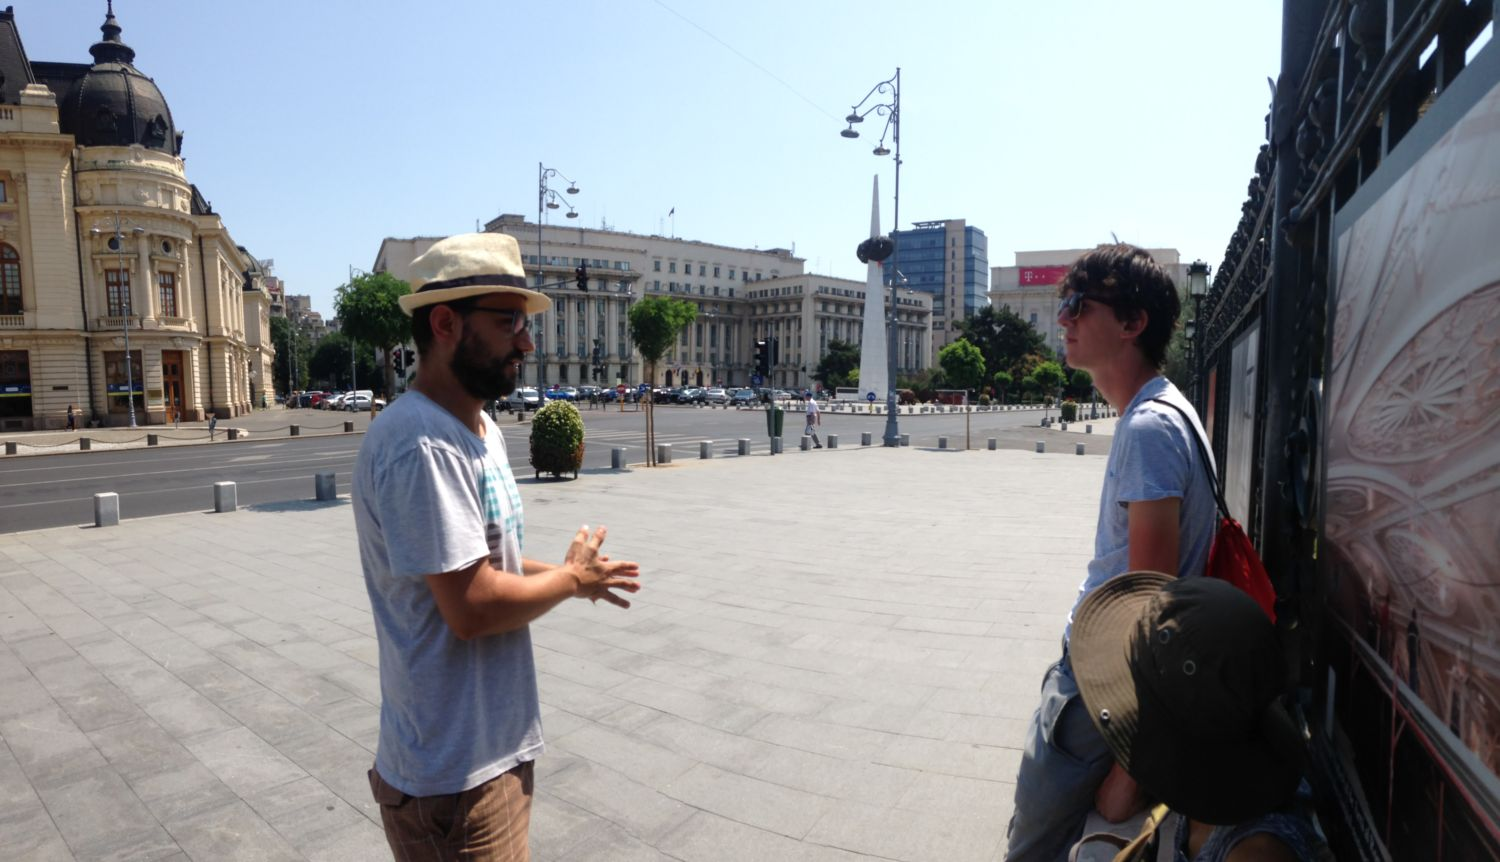 Alternative walking tour experience in Bucharest